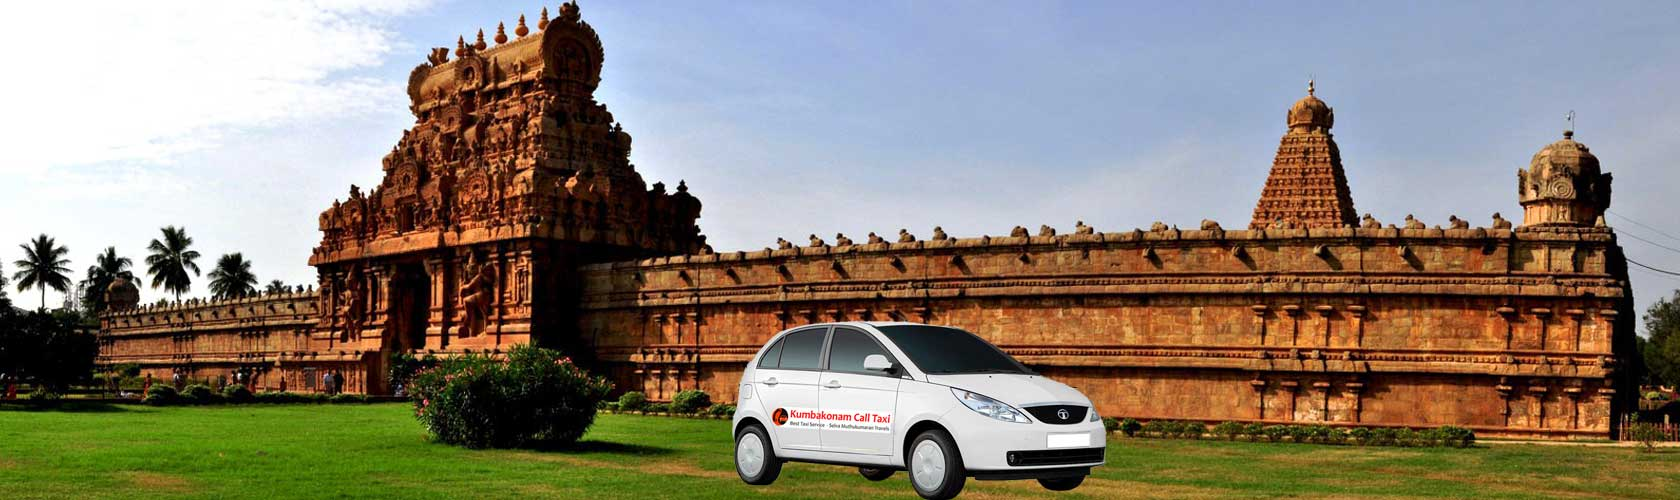 Cheap call taxi in kumbakonam